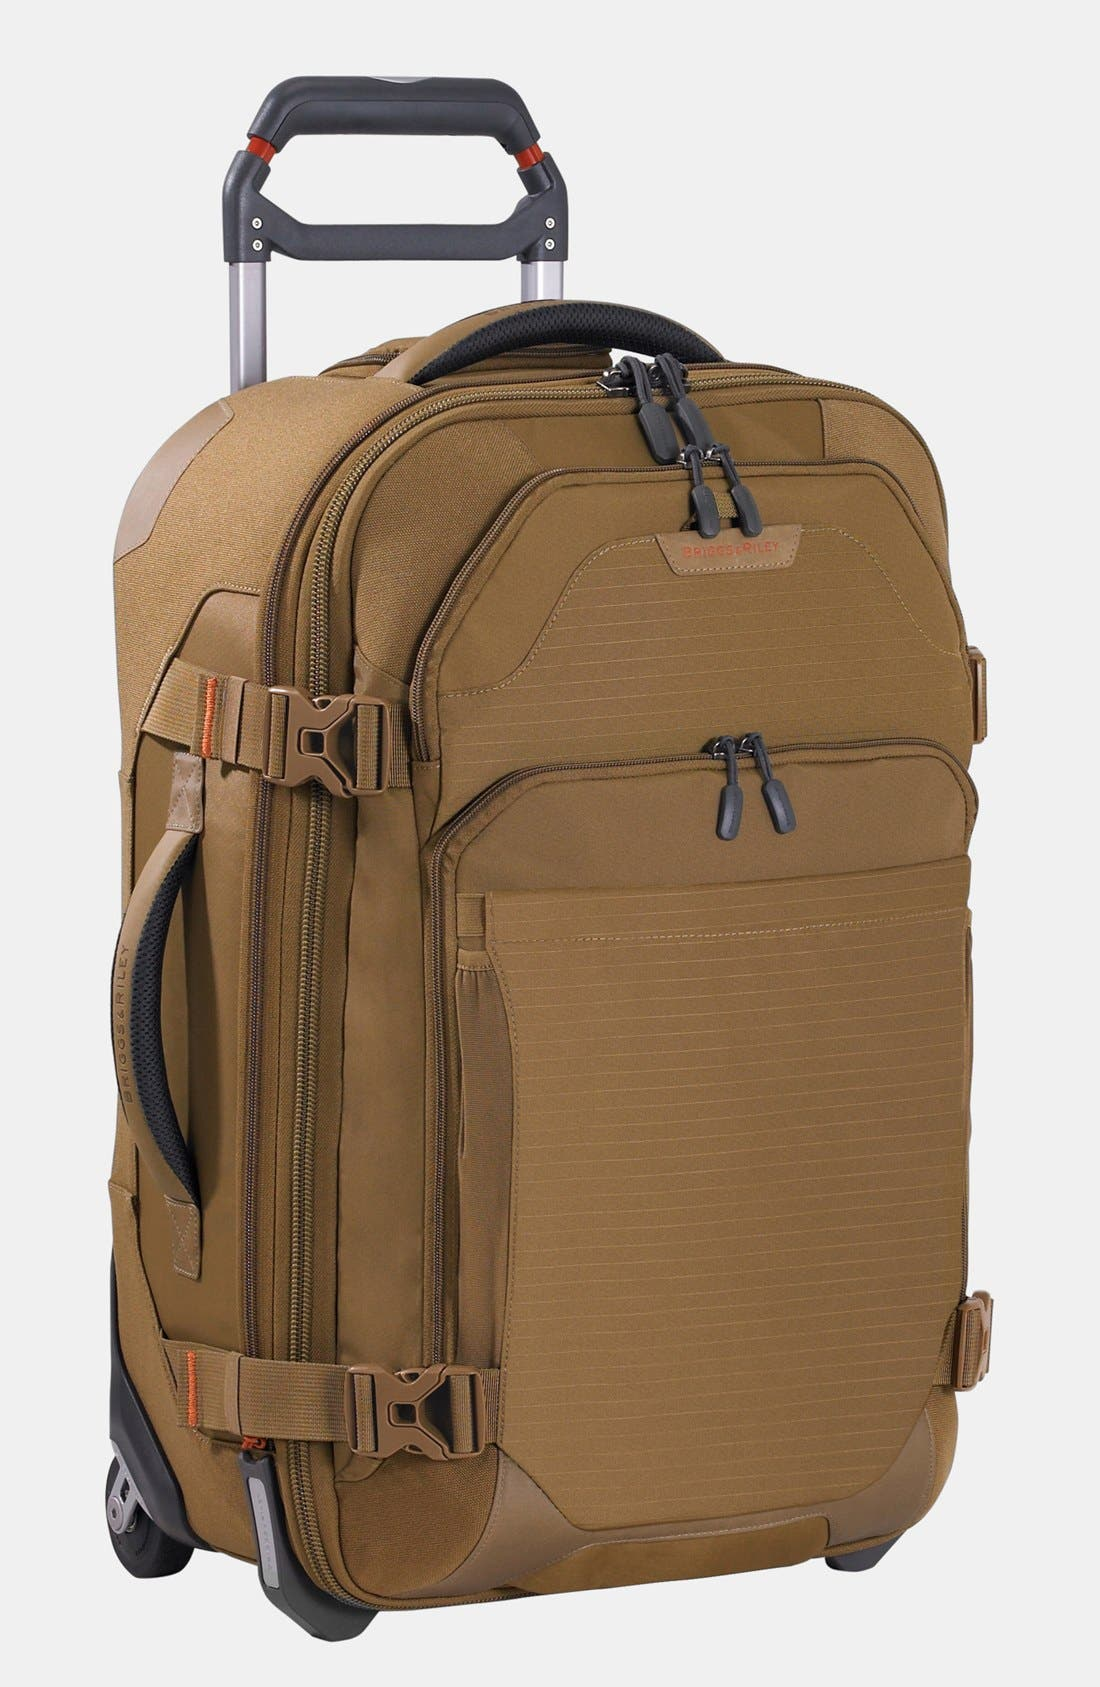 Alternate Image 1 Selected - Briggs & Riley 'Explore' Upright Carry-On (22 Inch)